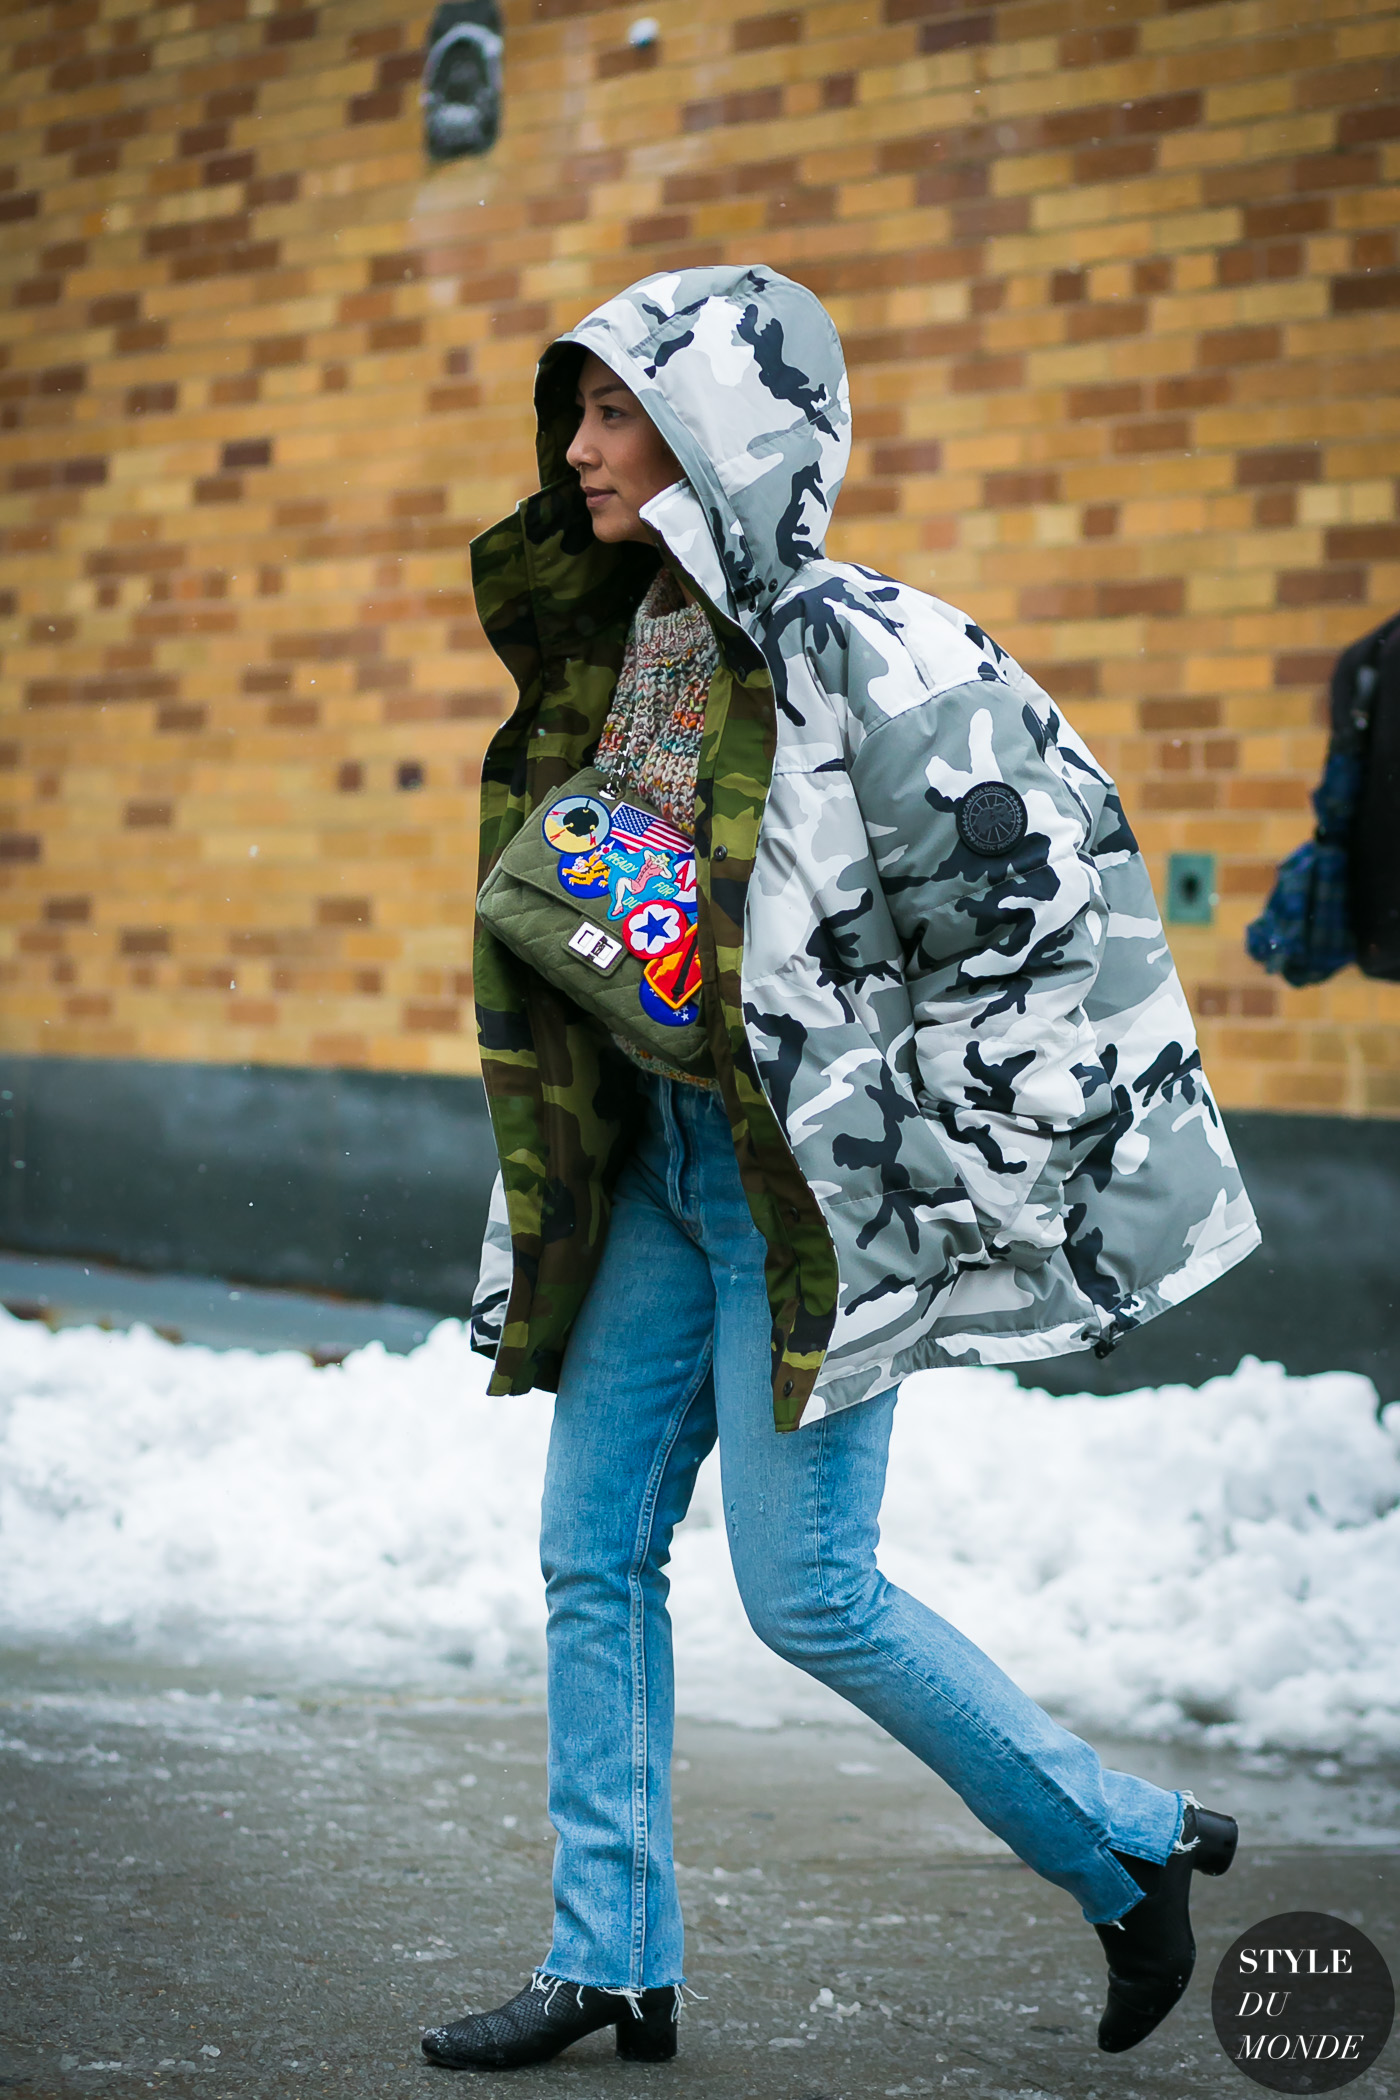 New York Fashion Week Fall 2017 Street Style: Vetements Canada Goose jacket